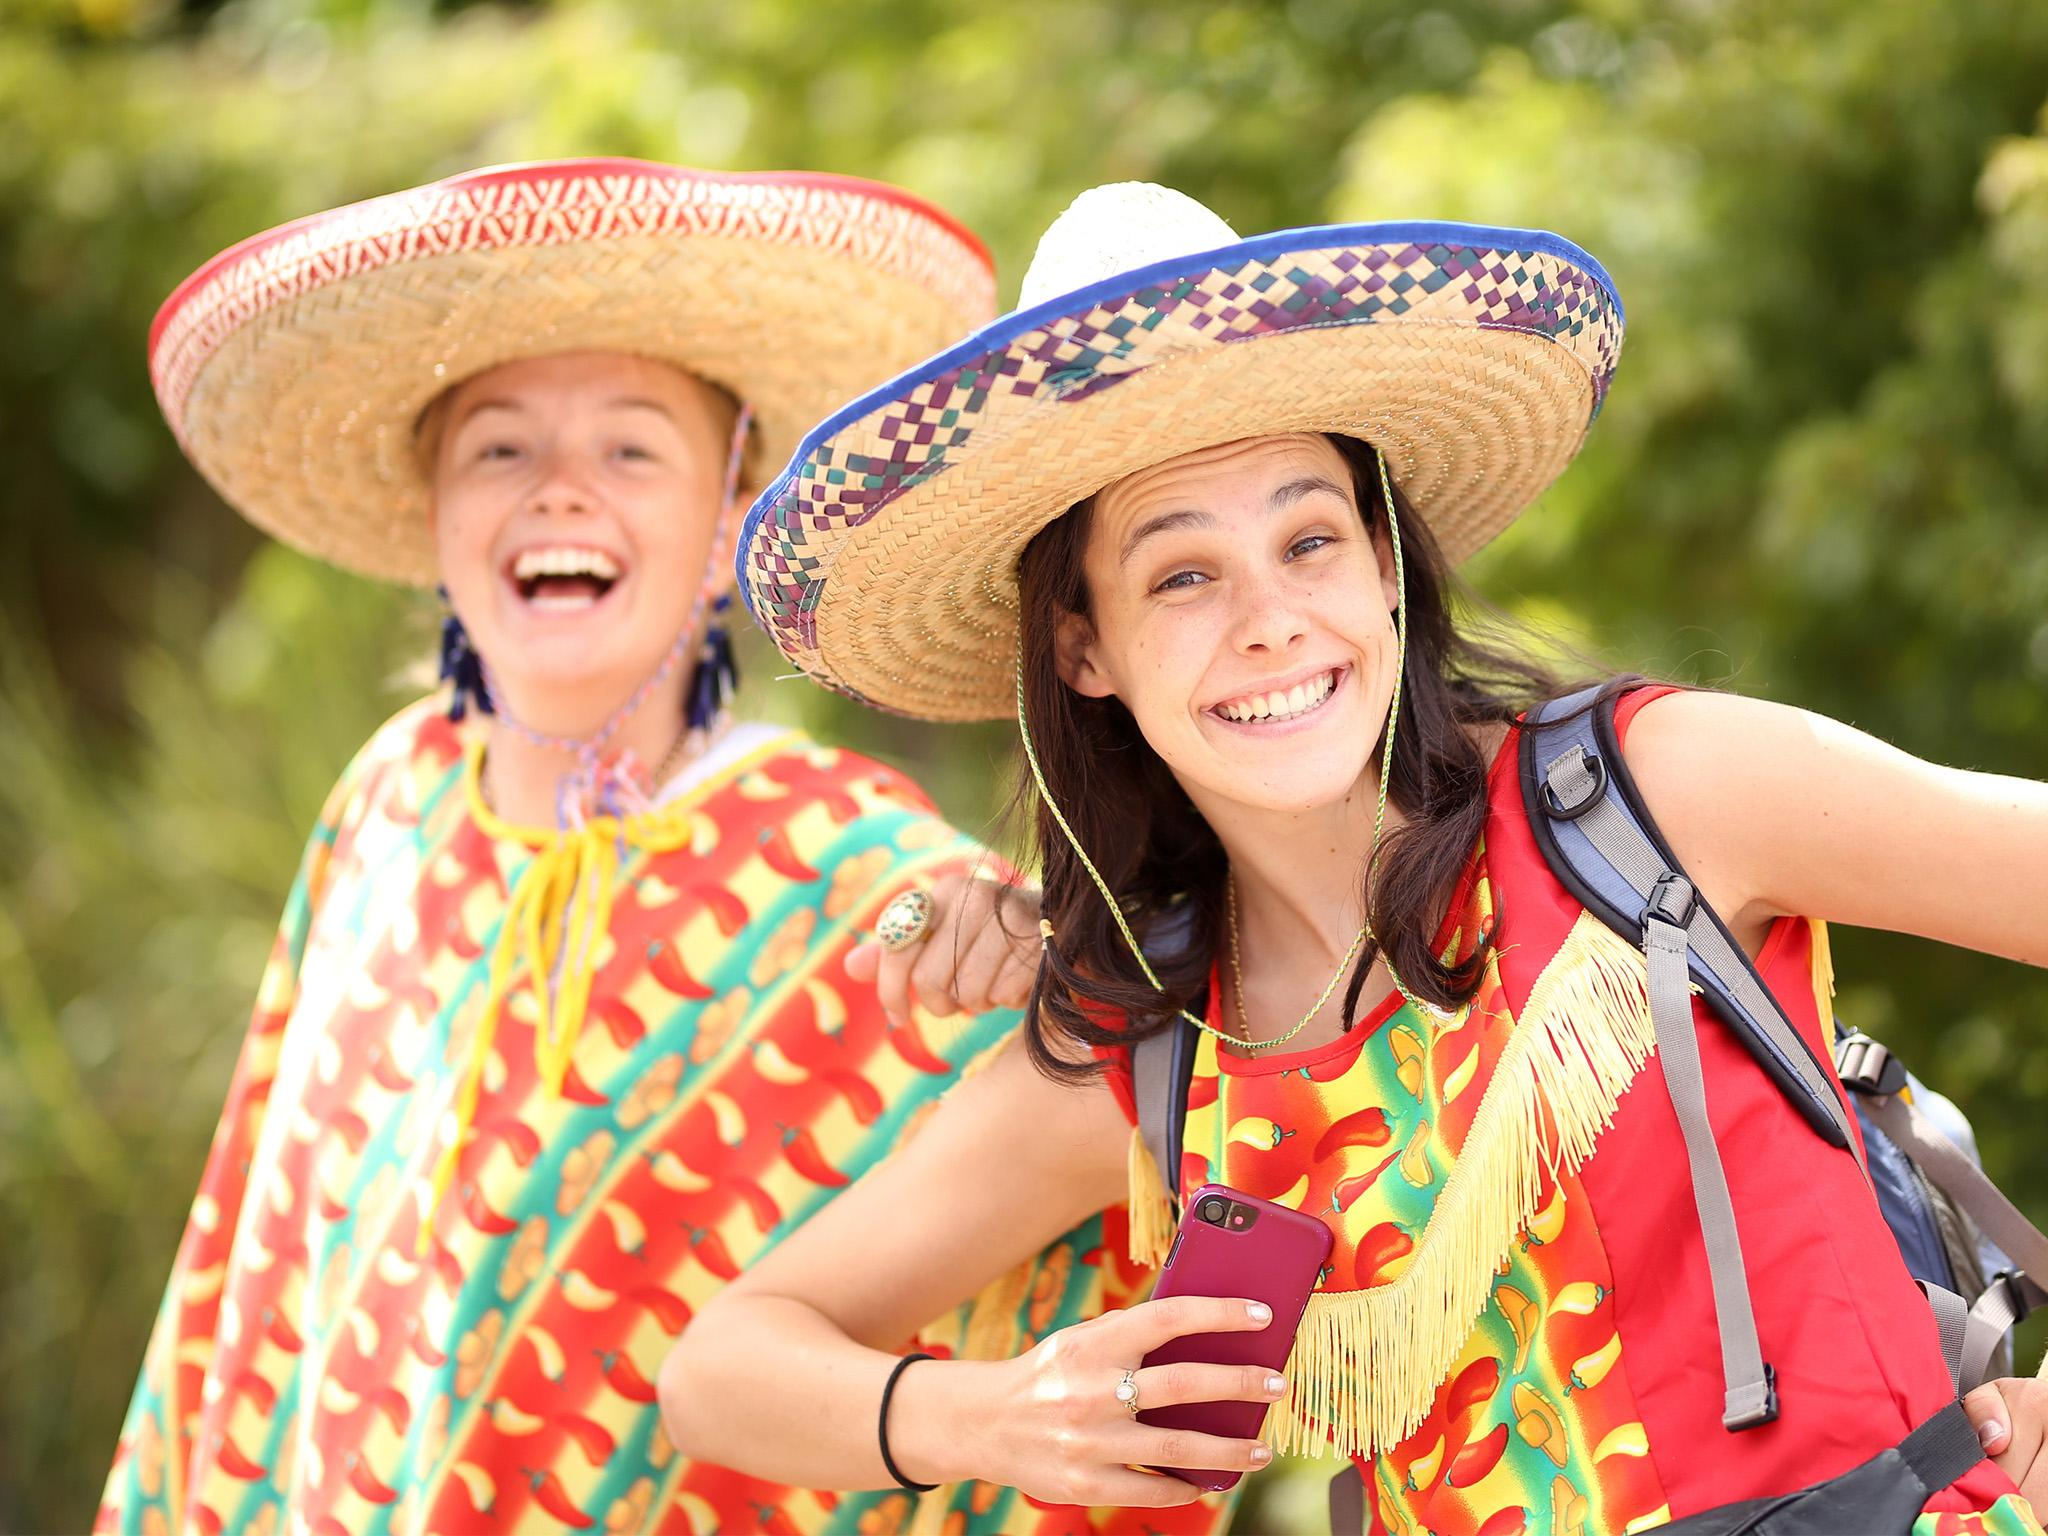 University Of Kent Students Furious At Being Told They Canu0027t Dress Up As  Cowboys, Tories Or Chavs. U0027